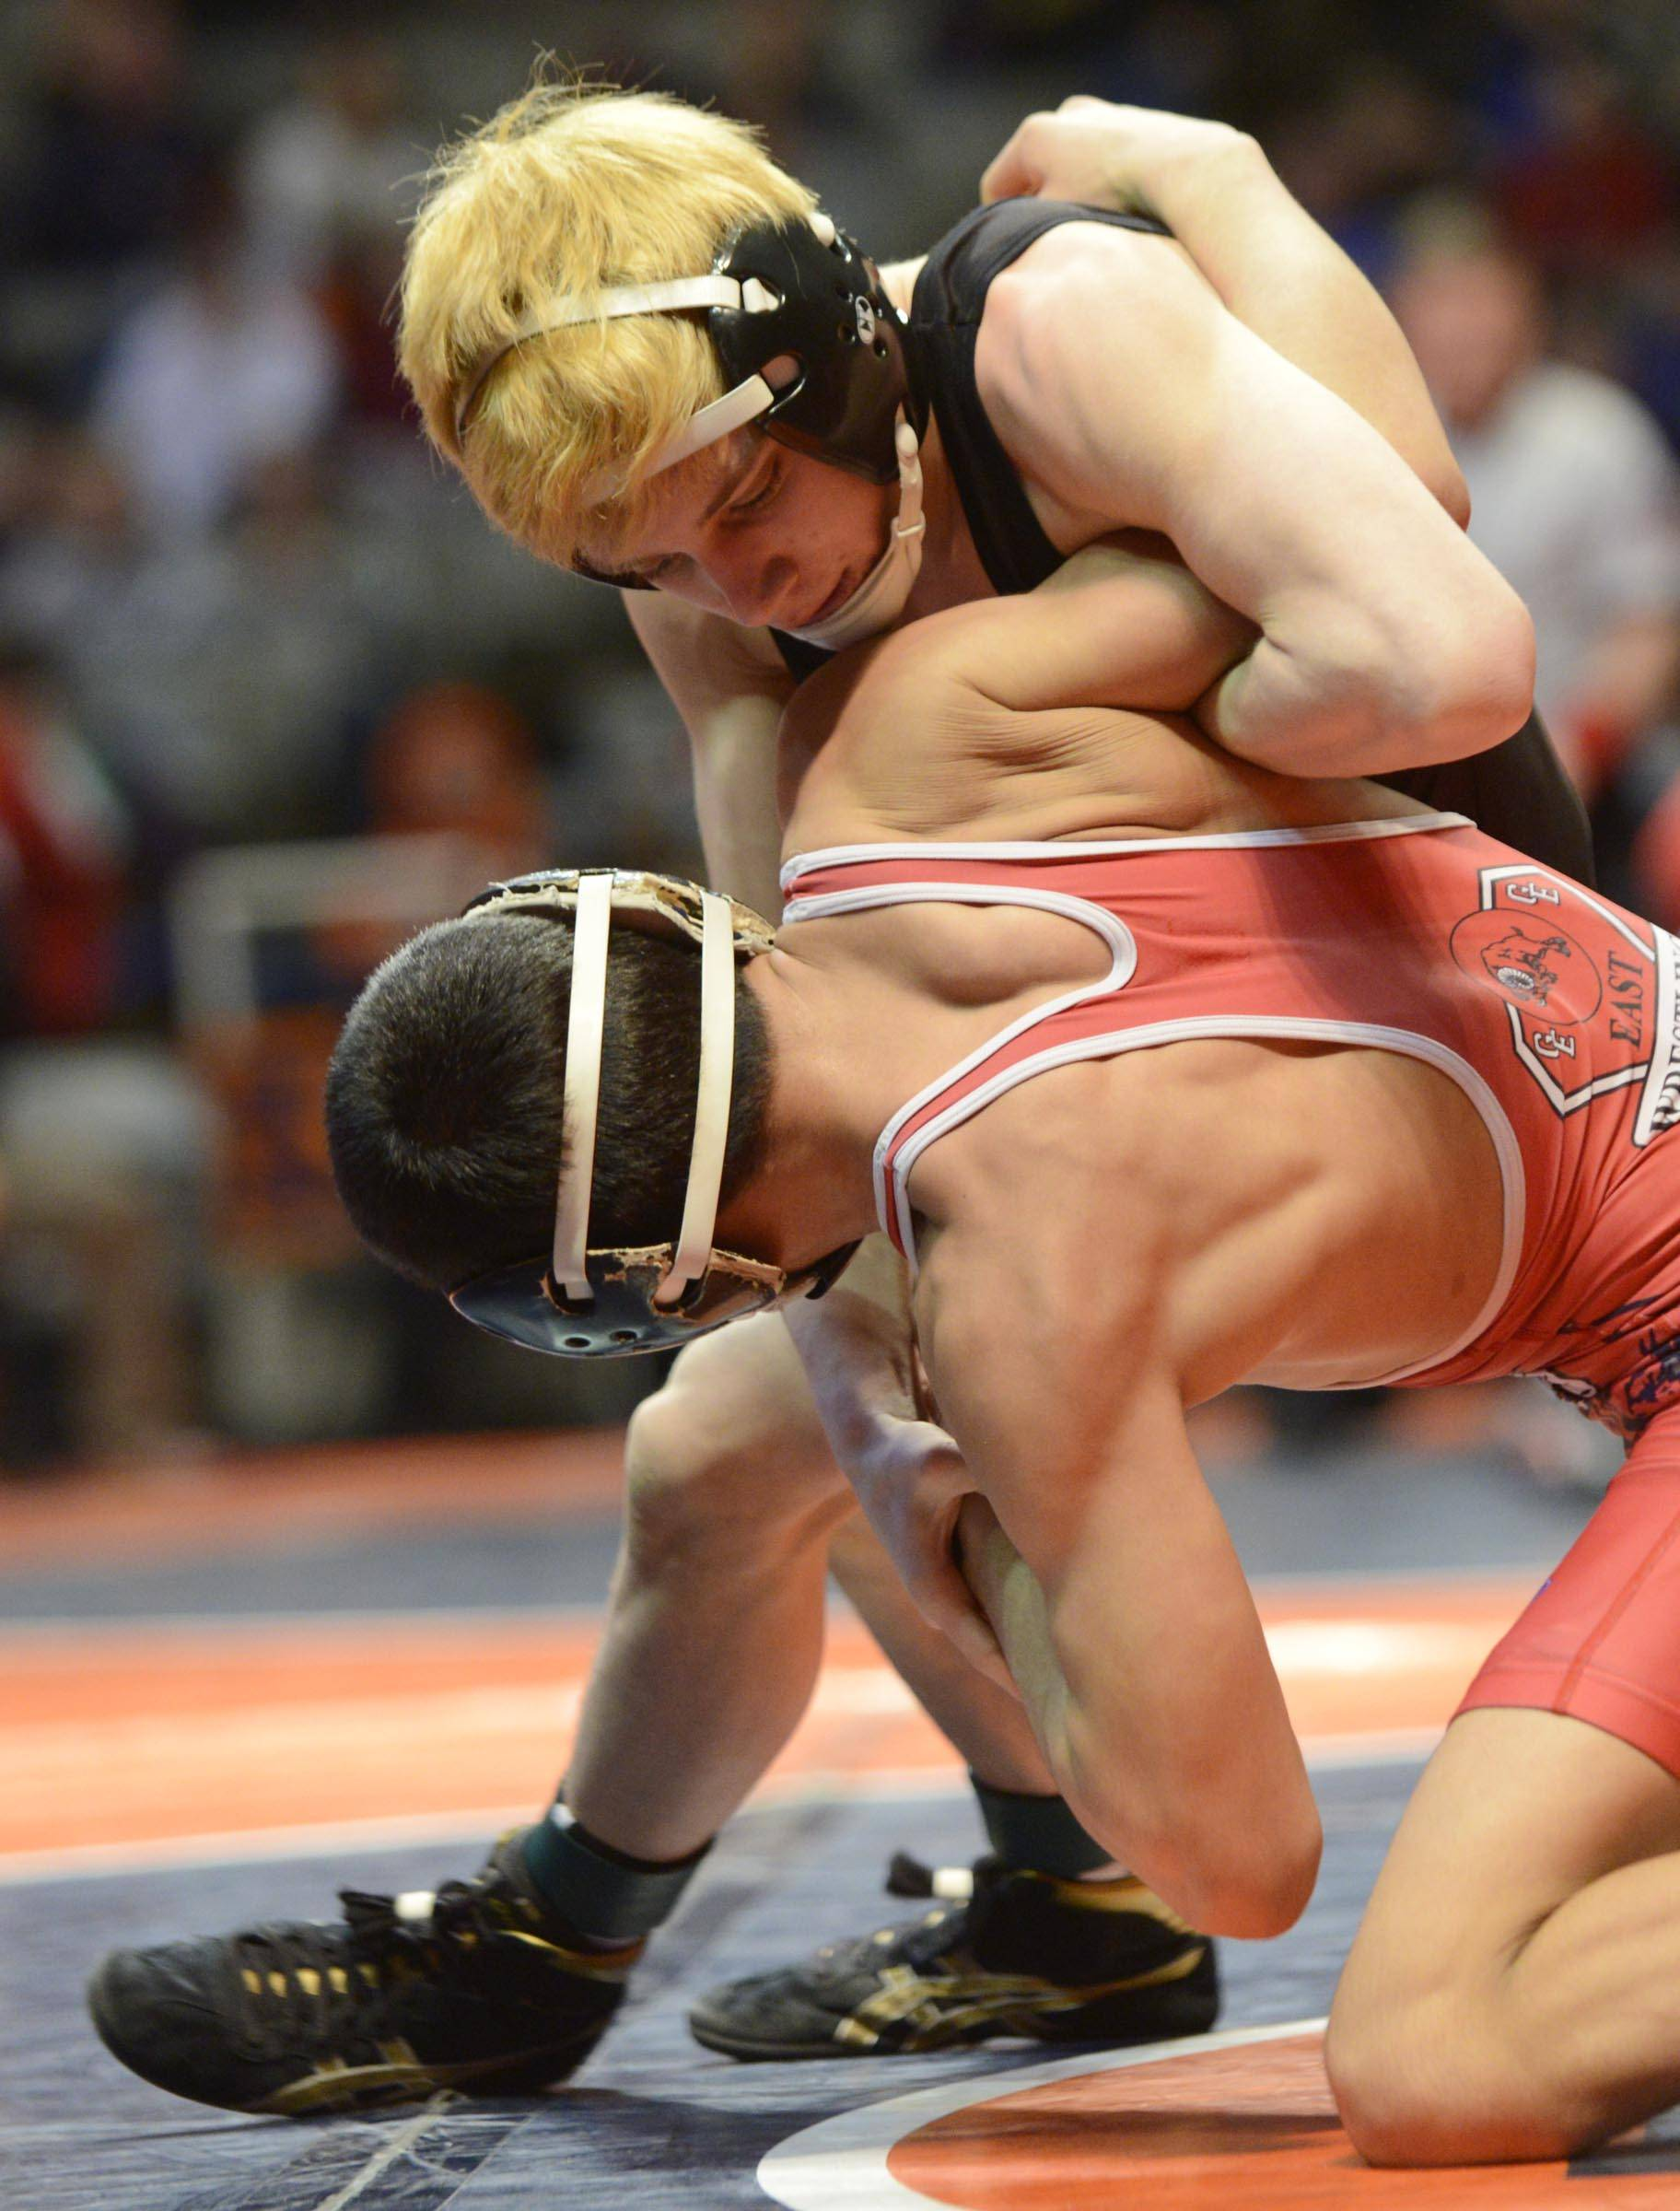 Kirk Johansen of Glenbard North High School competes against Carlos Fuentez of Glenbard East High School Saturday in the 106-pound weight class third place match of the wrestling IHSA Class 3A state tournament at State Farm Center in Champaign.